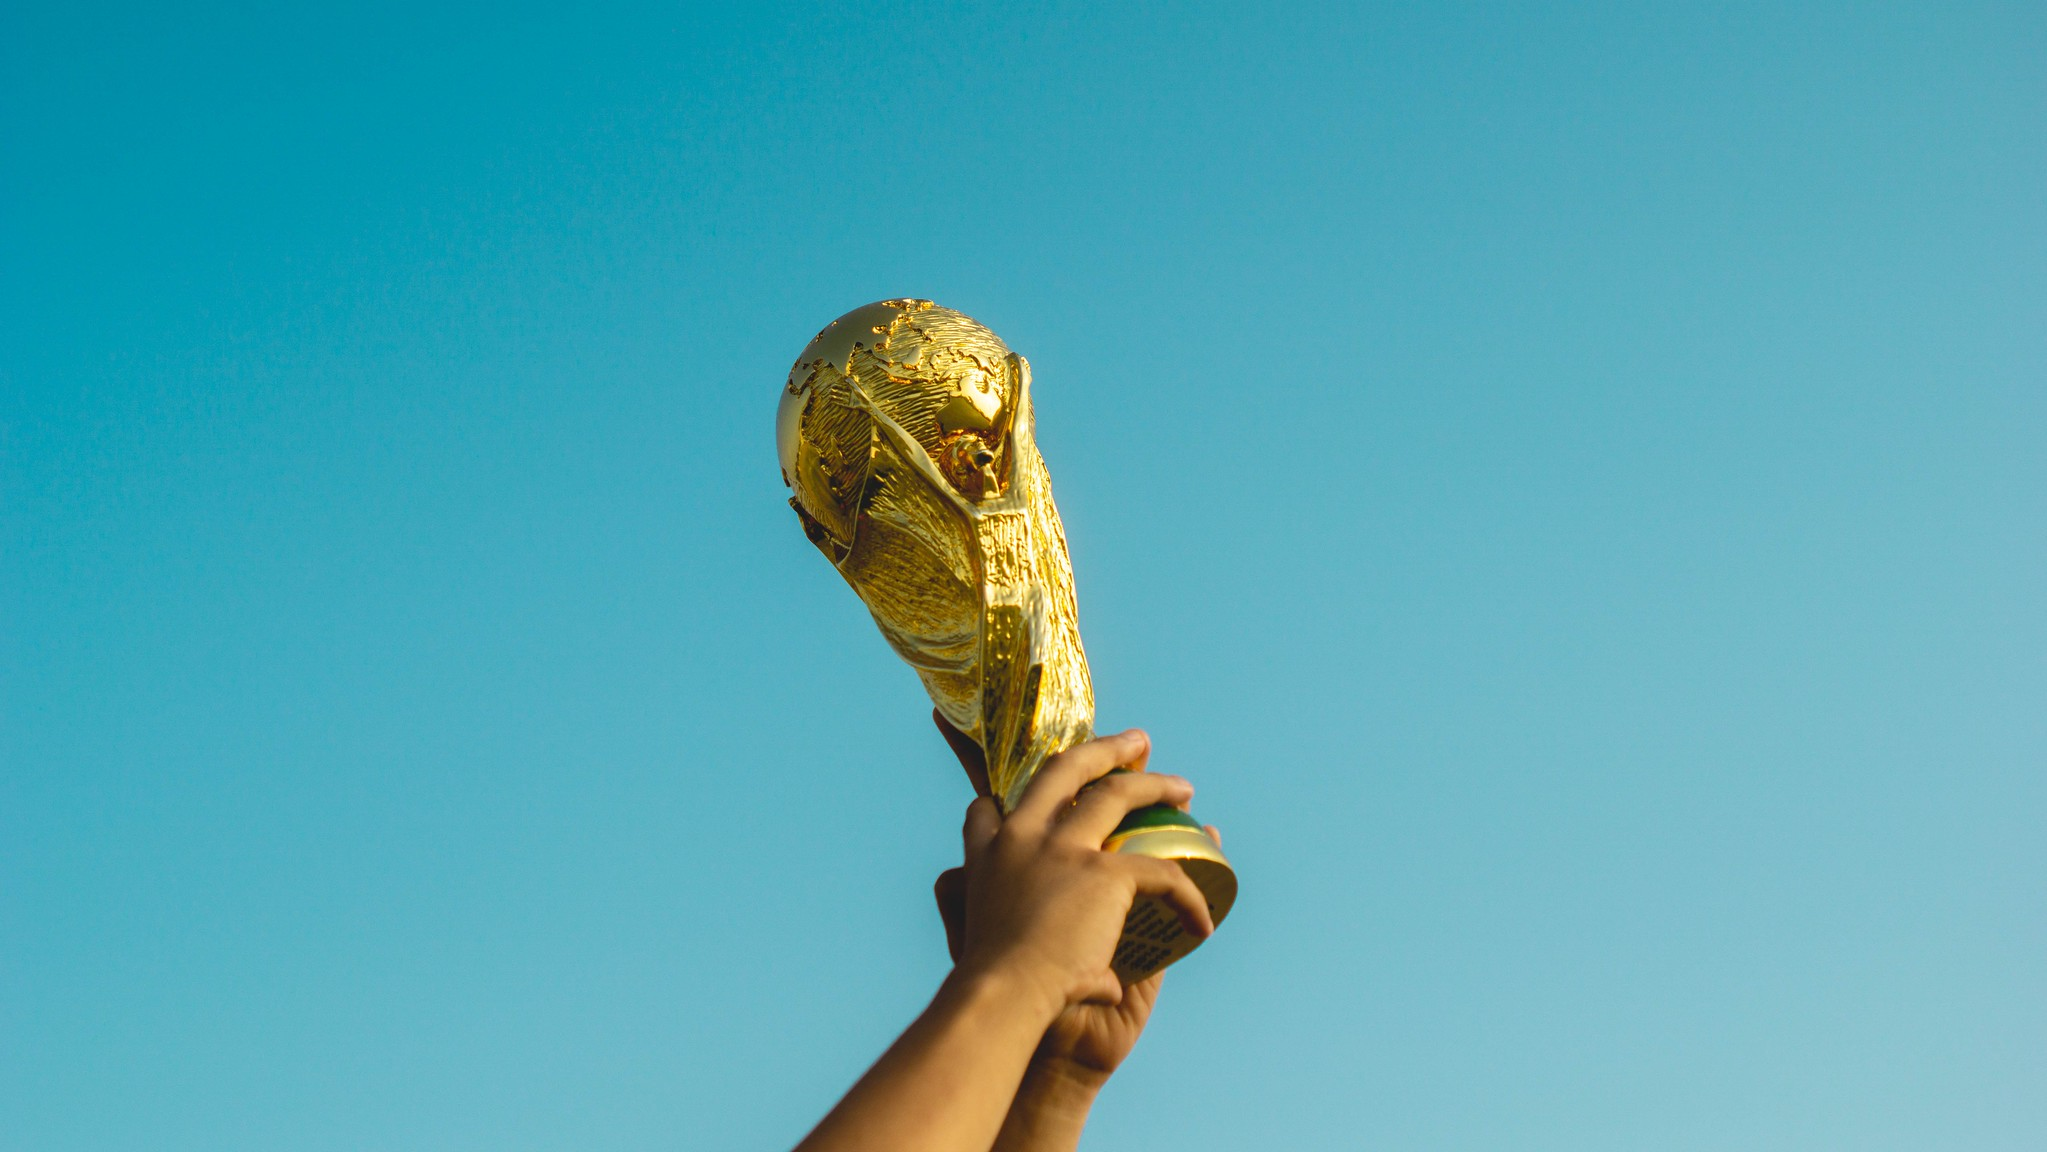 holding up the World Cup trophy